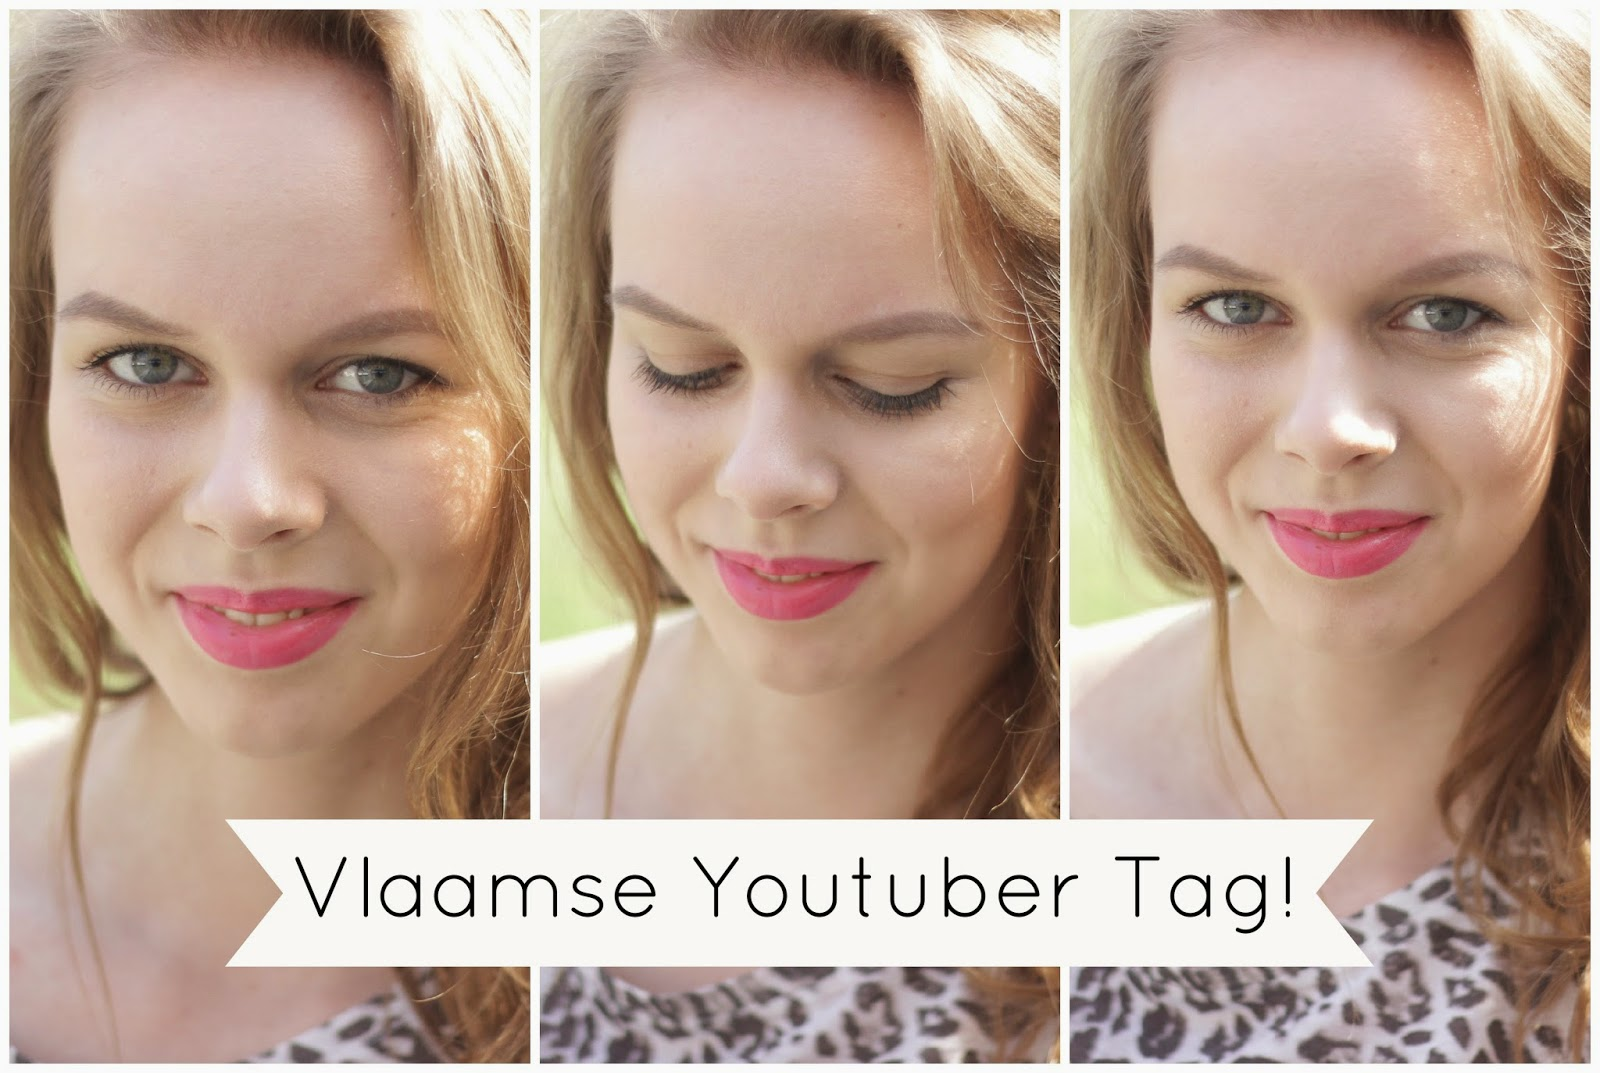 de vlaamse youtuber tag